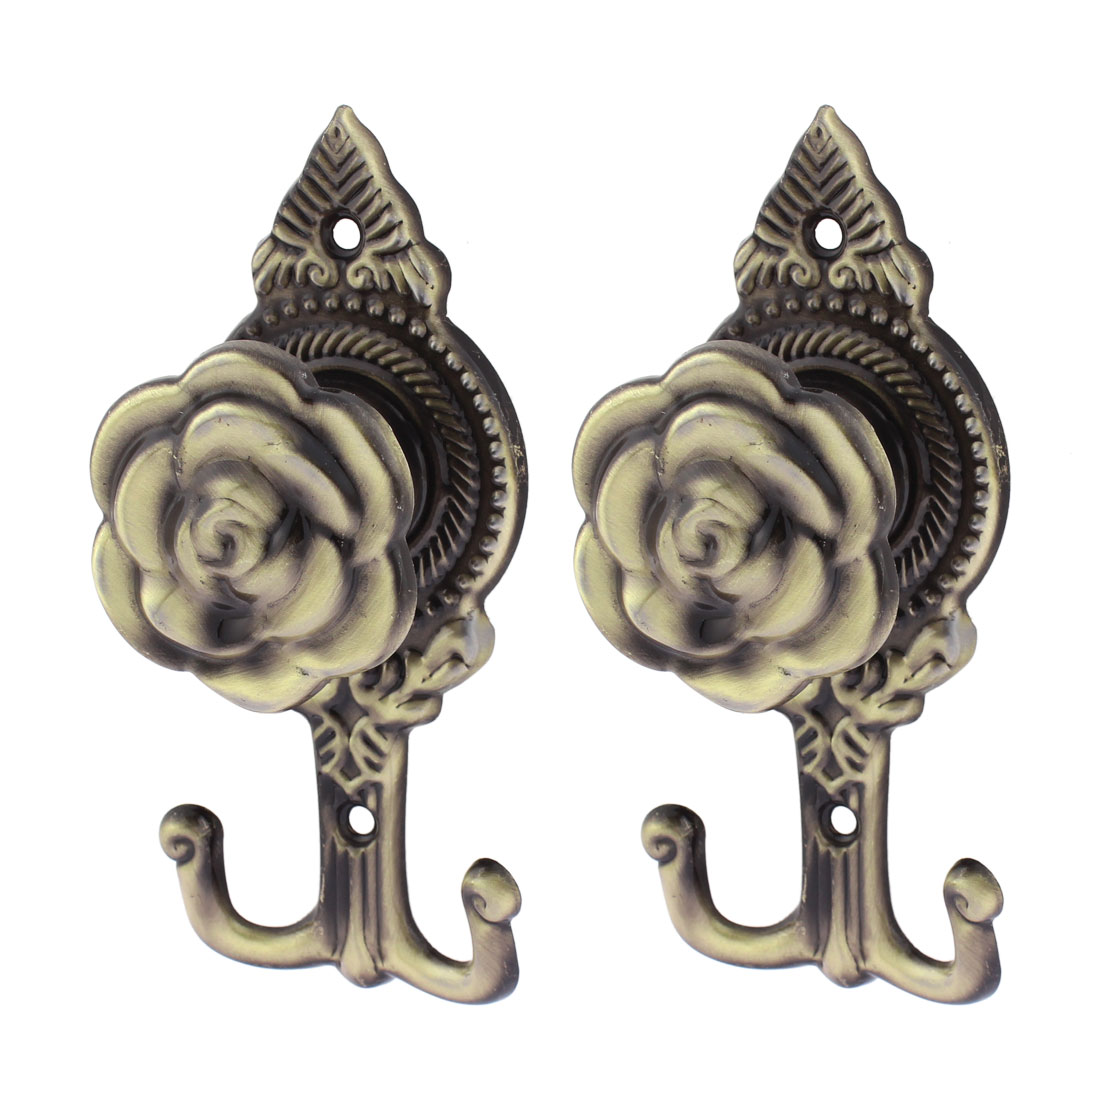 2Pcs Flower Pattern Drapery Curtain Wall Tassel Hook Holder Hookback Tieback Bronze Tone